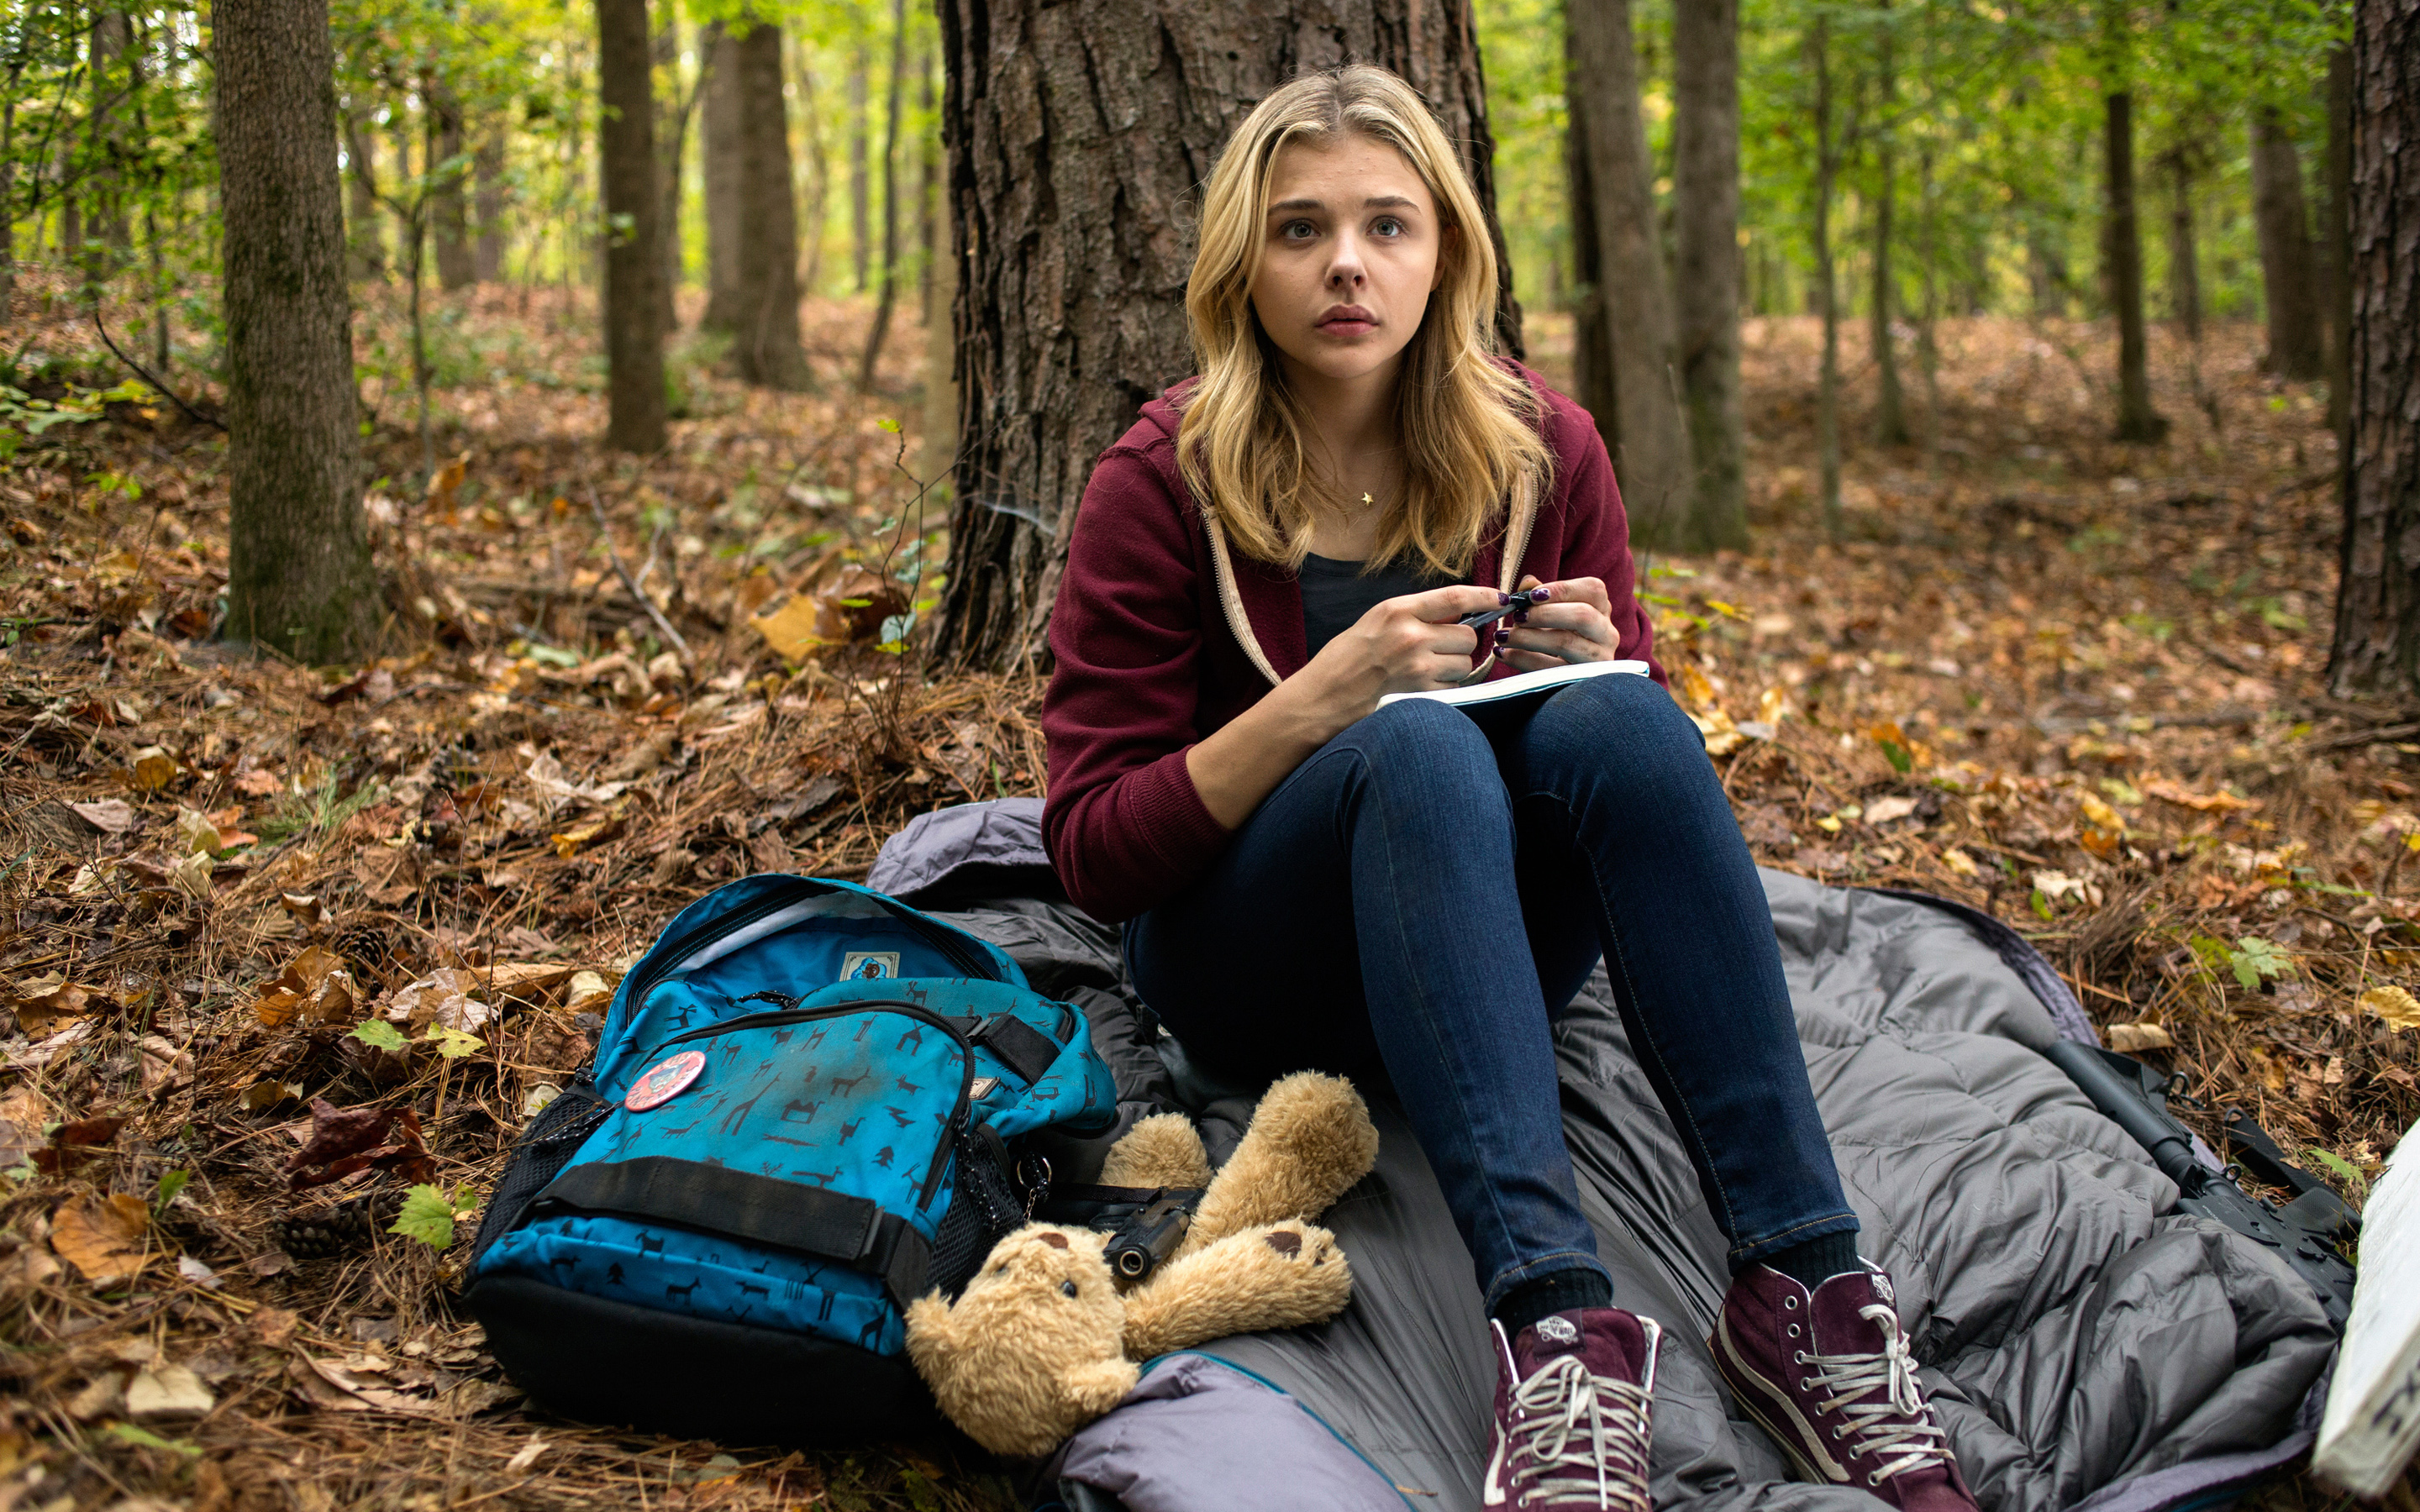 Download the last star: the final book of the 5th wave.